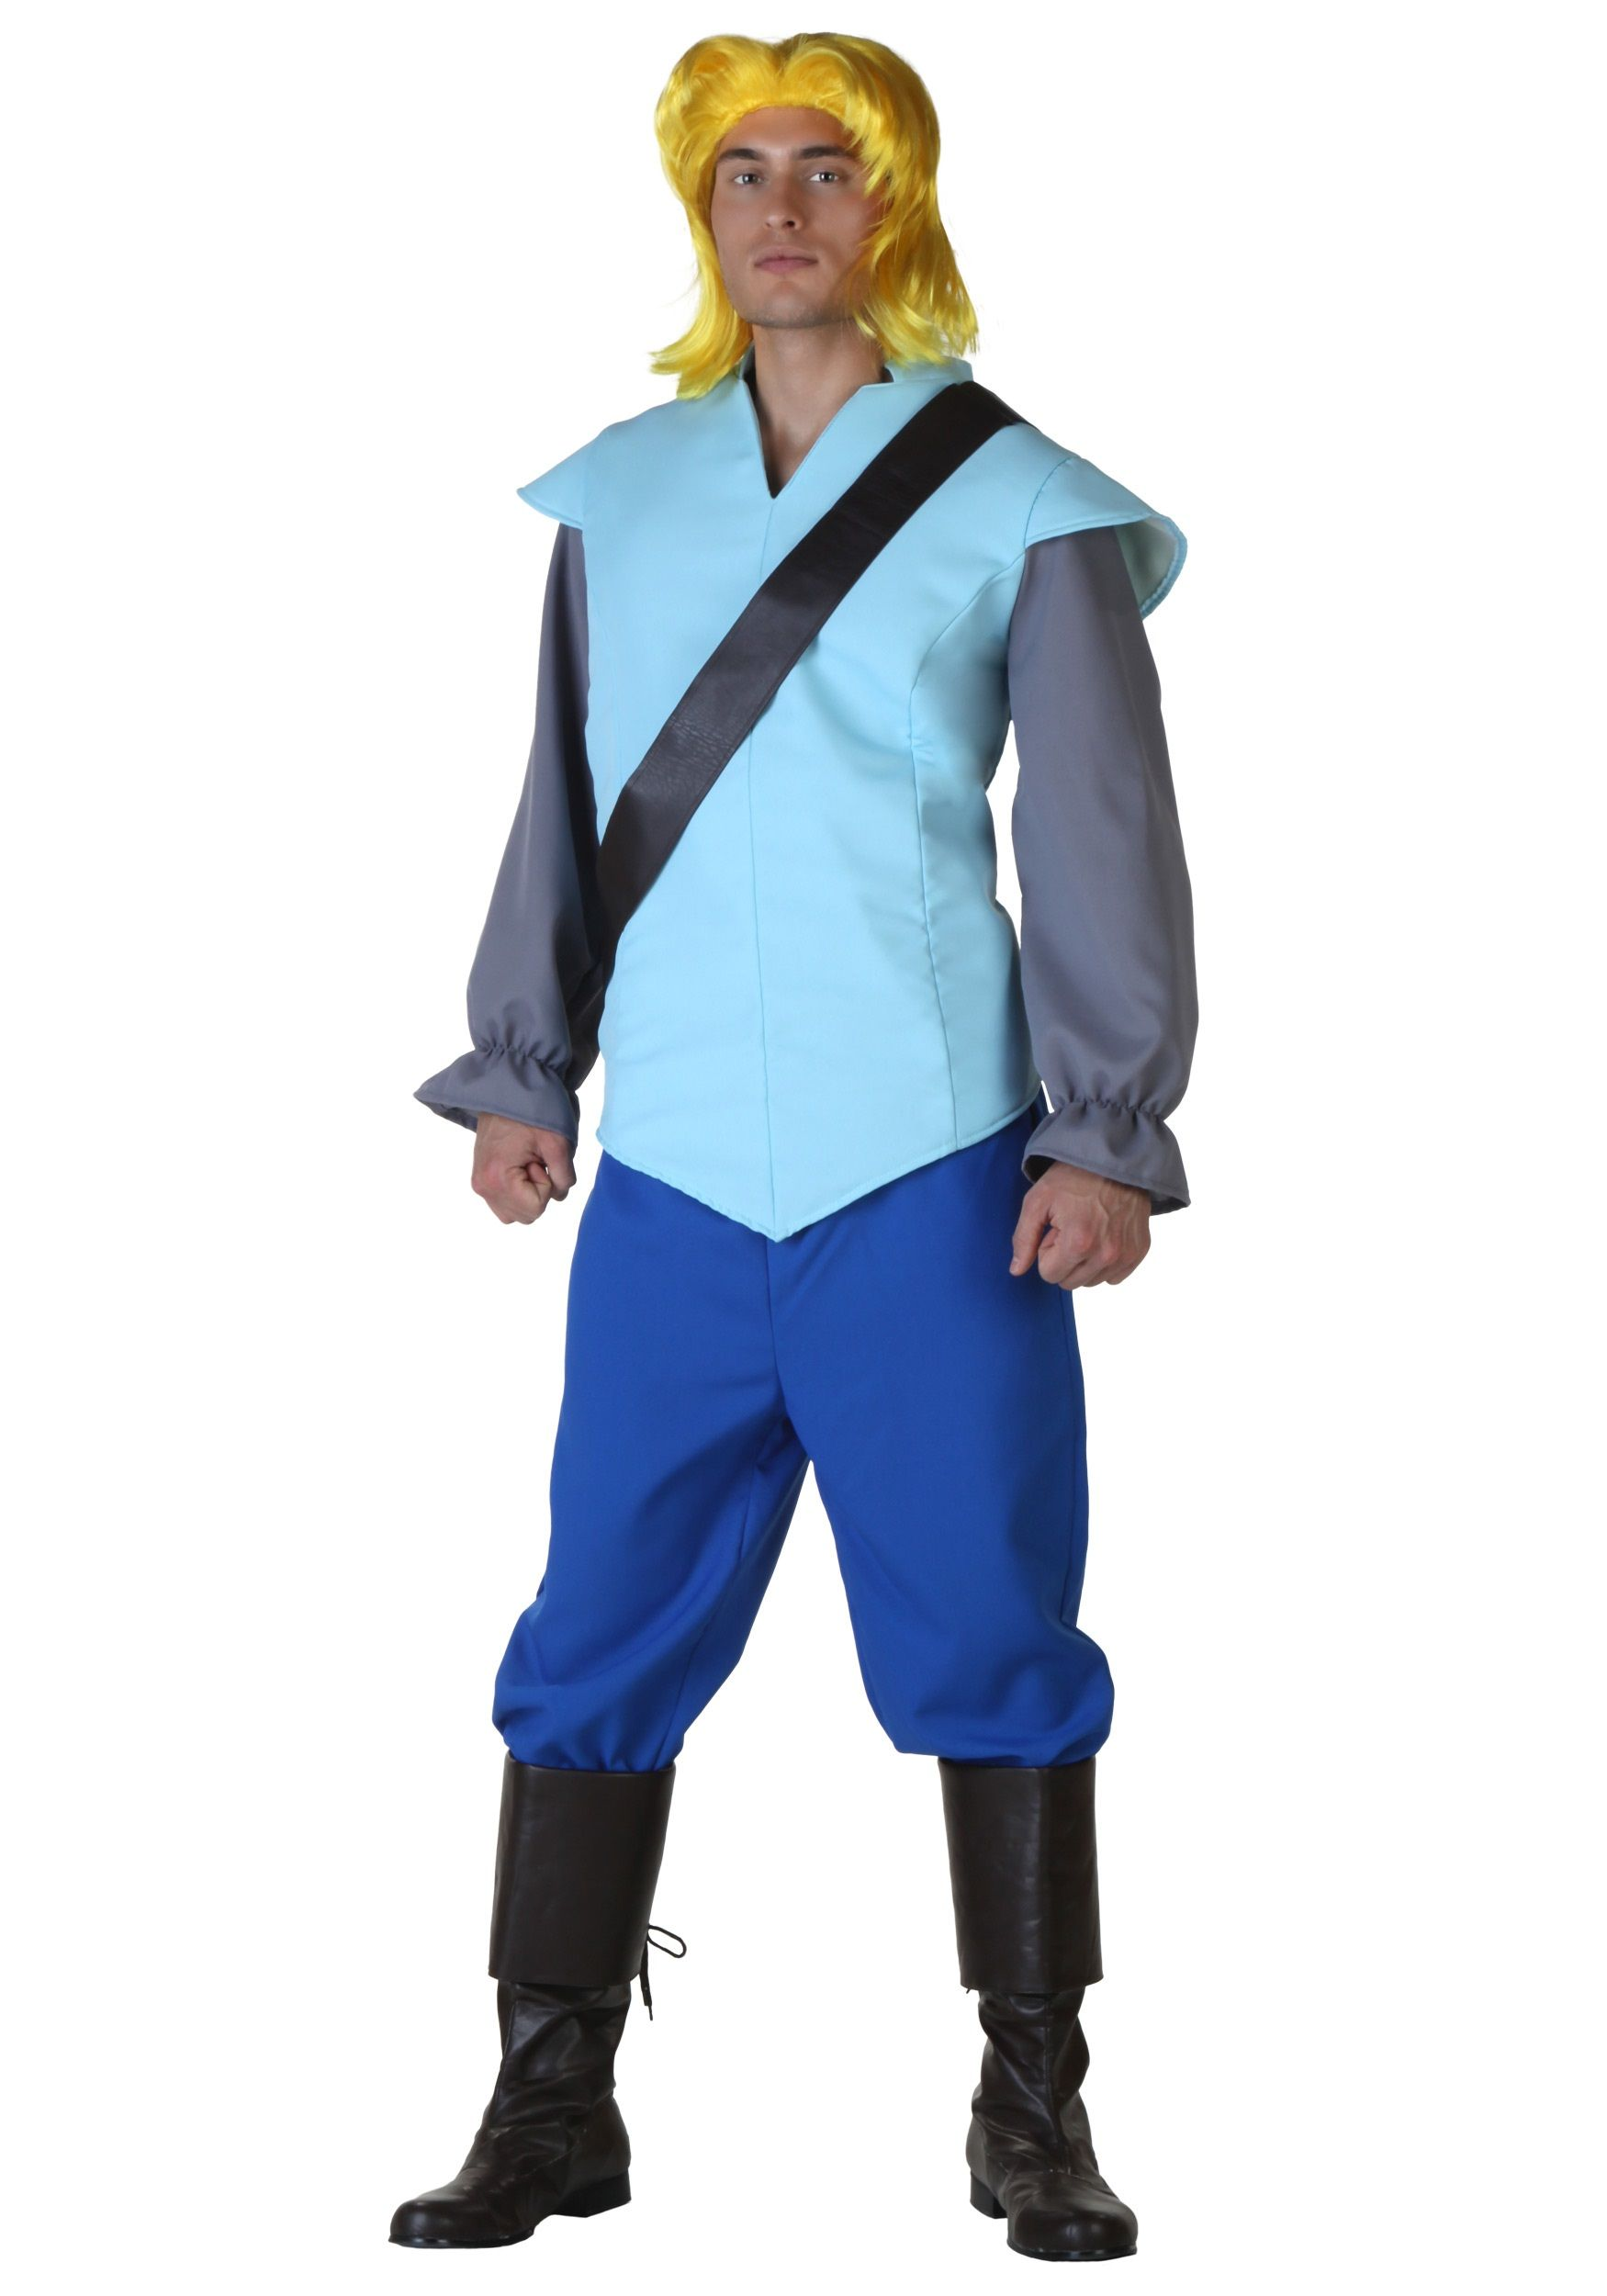 Mens John Smith Costume John smith costumes, Mens